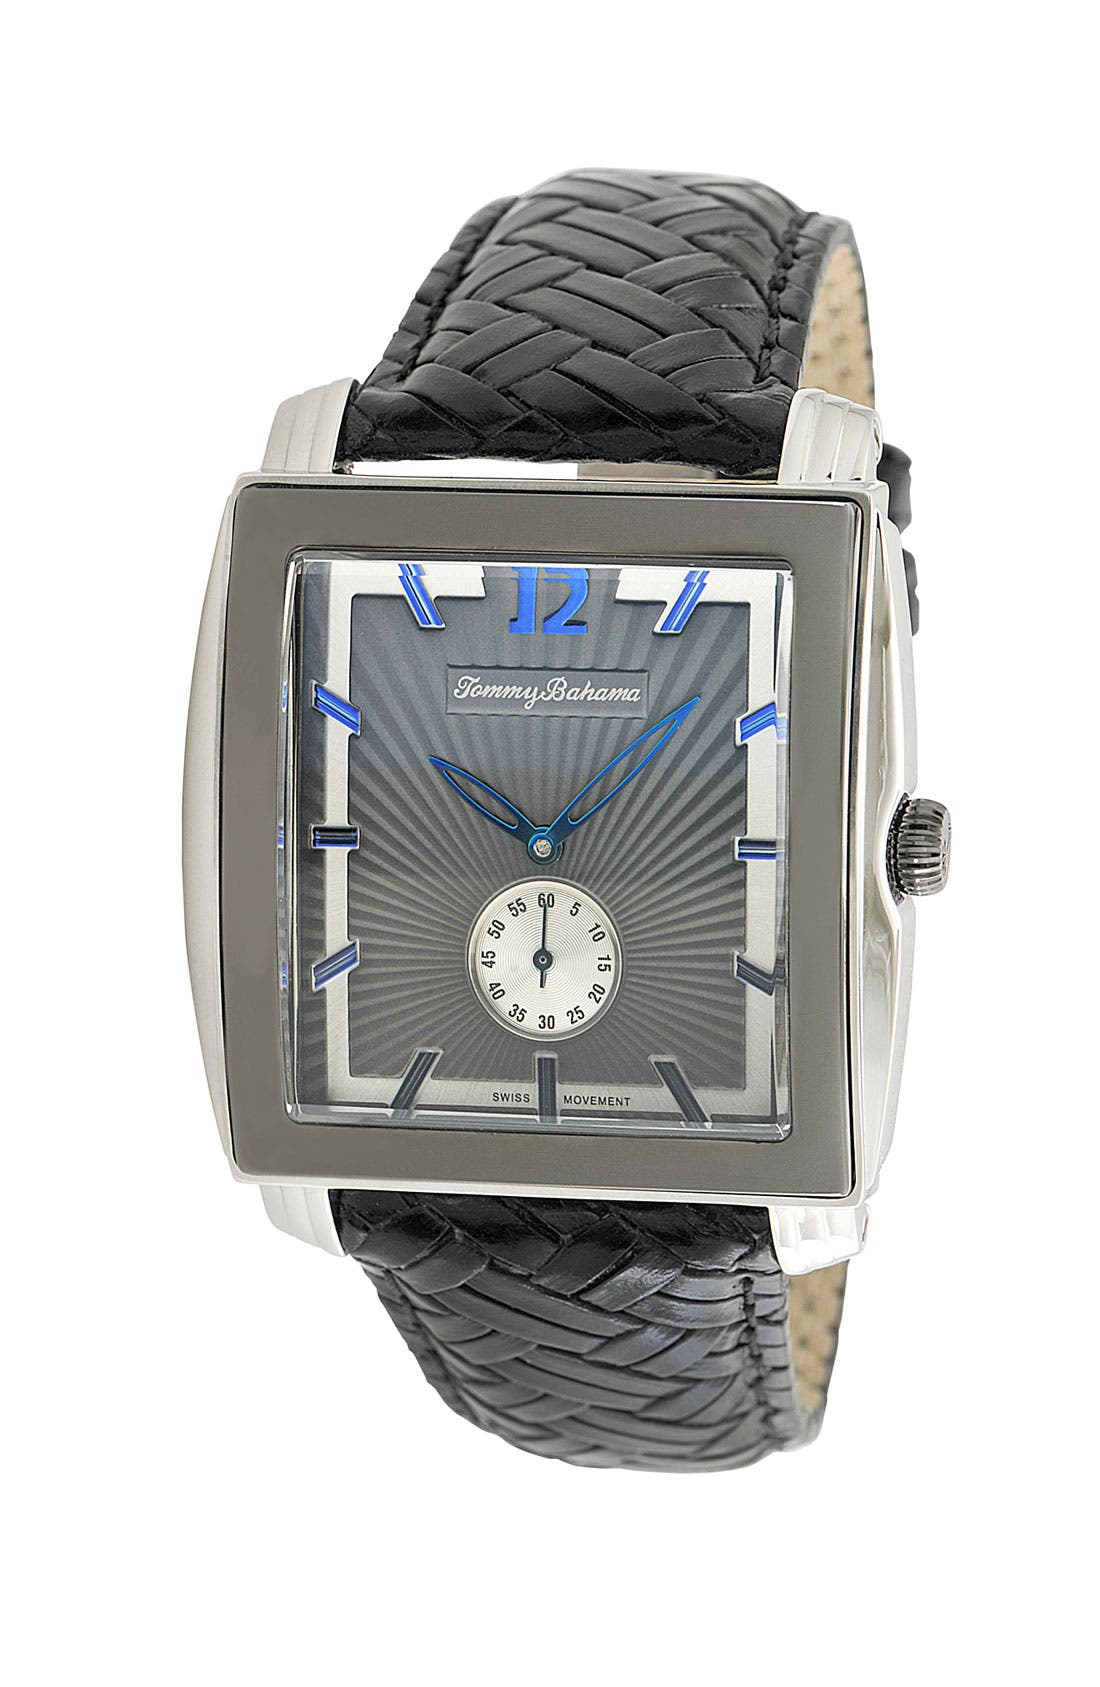 Alternate Image 1 Selected - Tommy Bahama 'Cairo' Square Face Leather Strap Watch